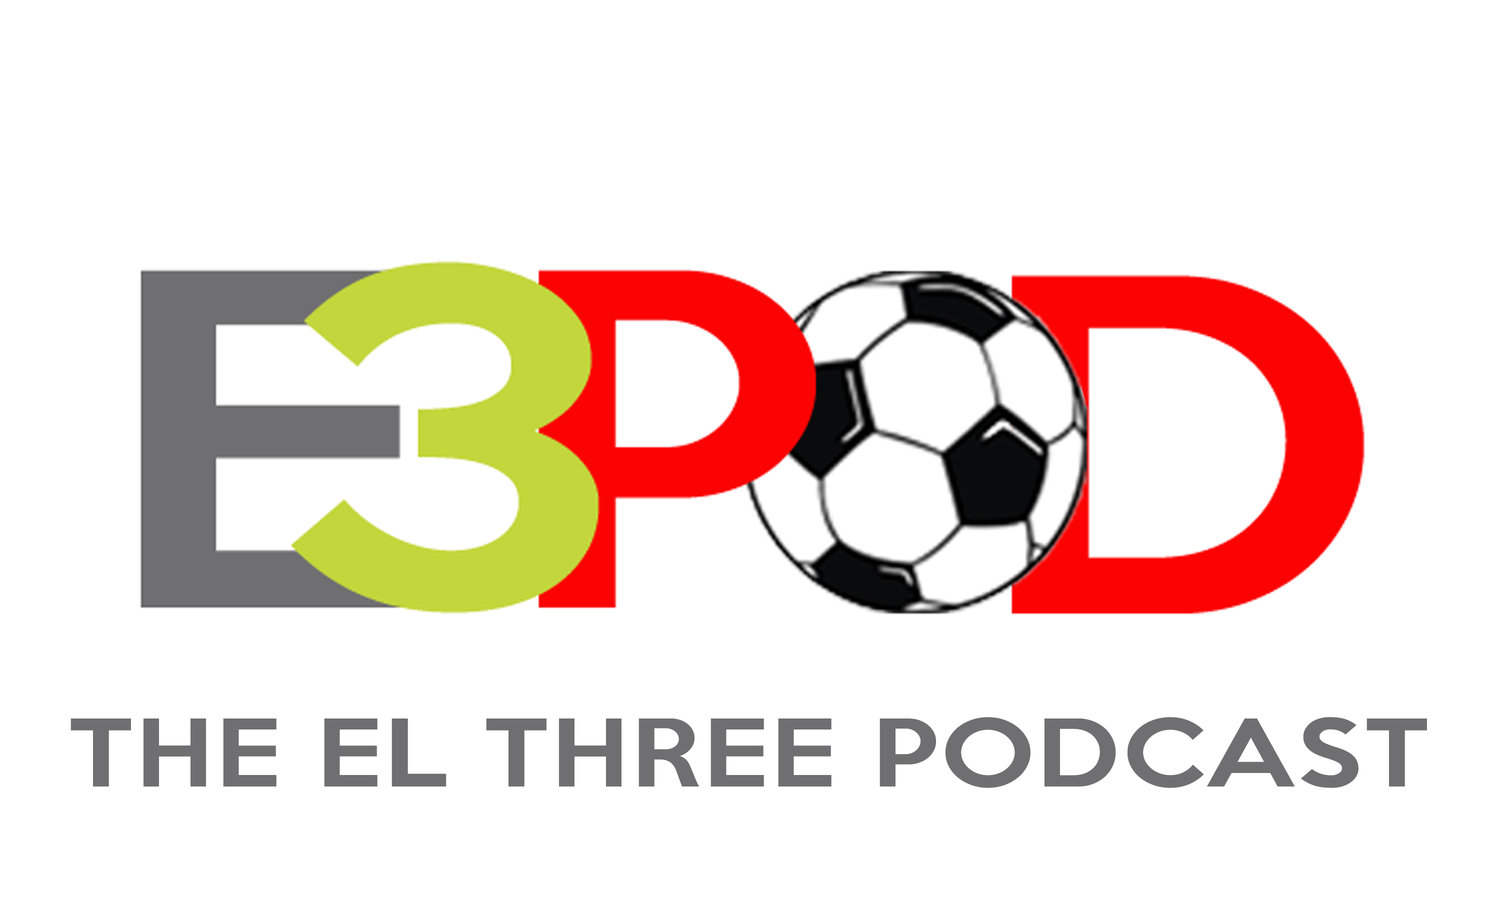 The El Three Podcast